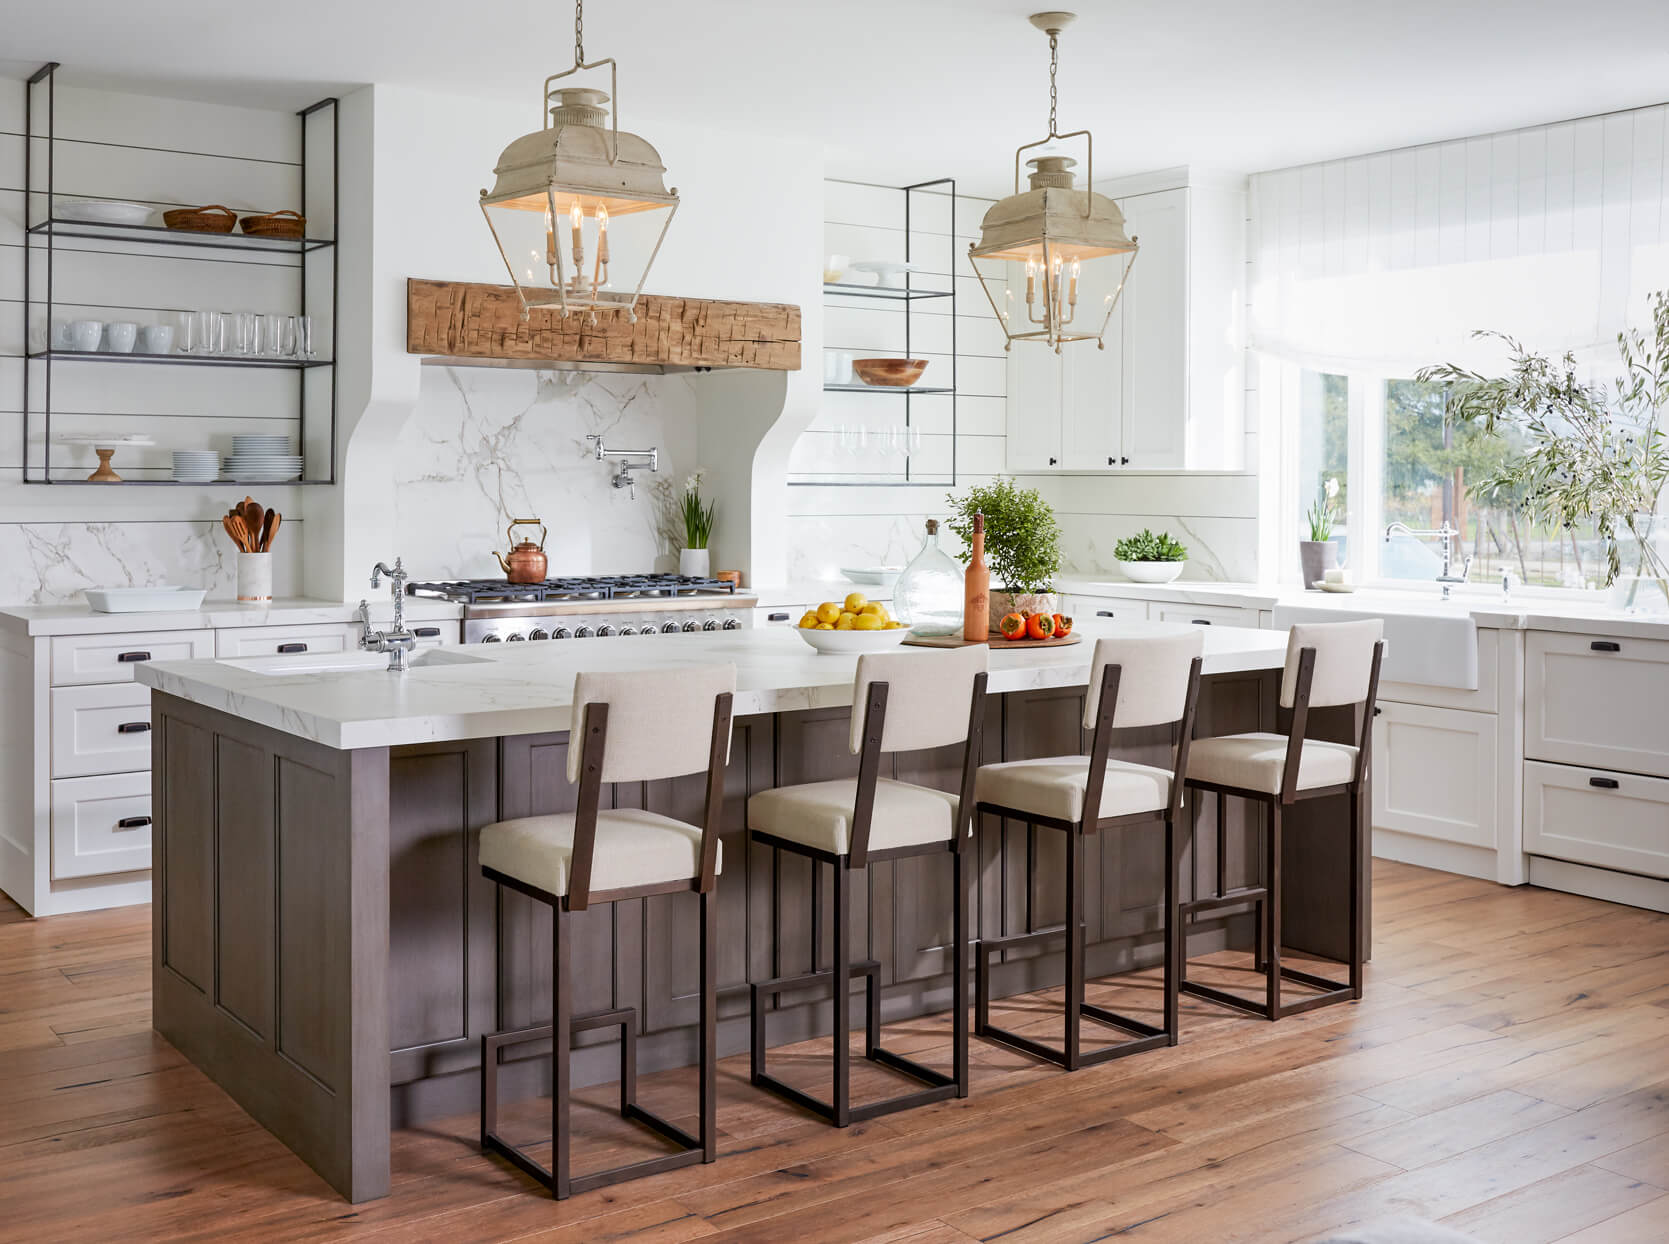 Large Kitchen Island with Seating for 4 Design Ideas